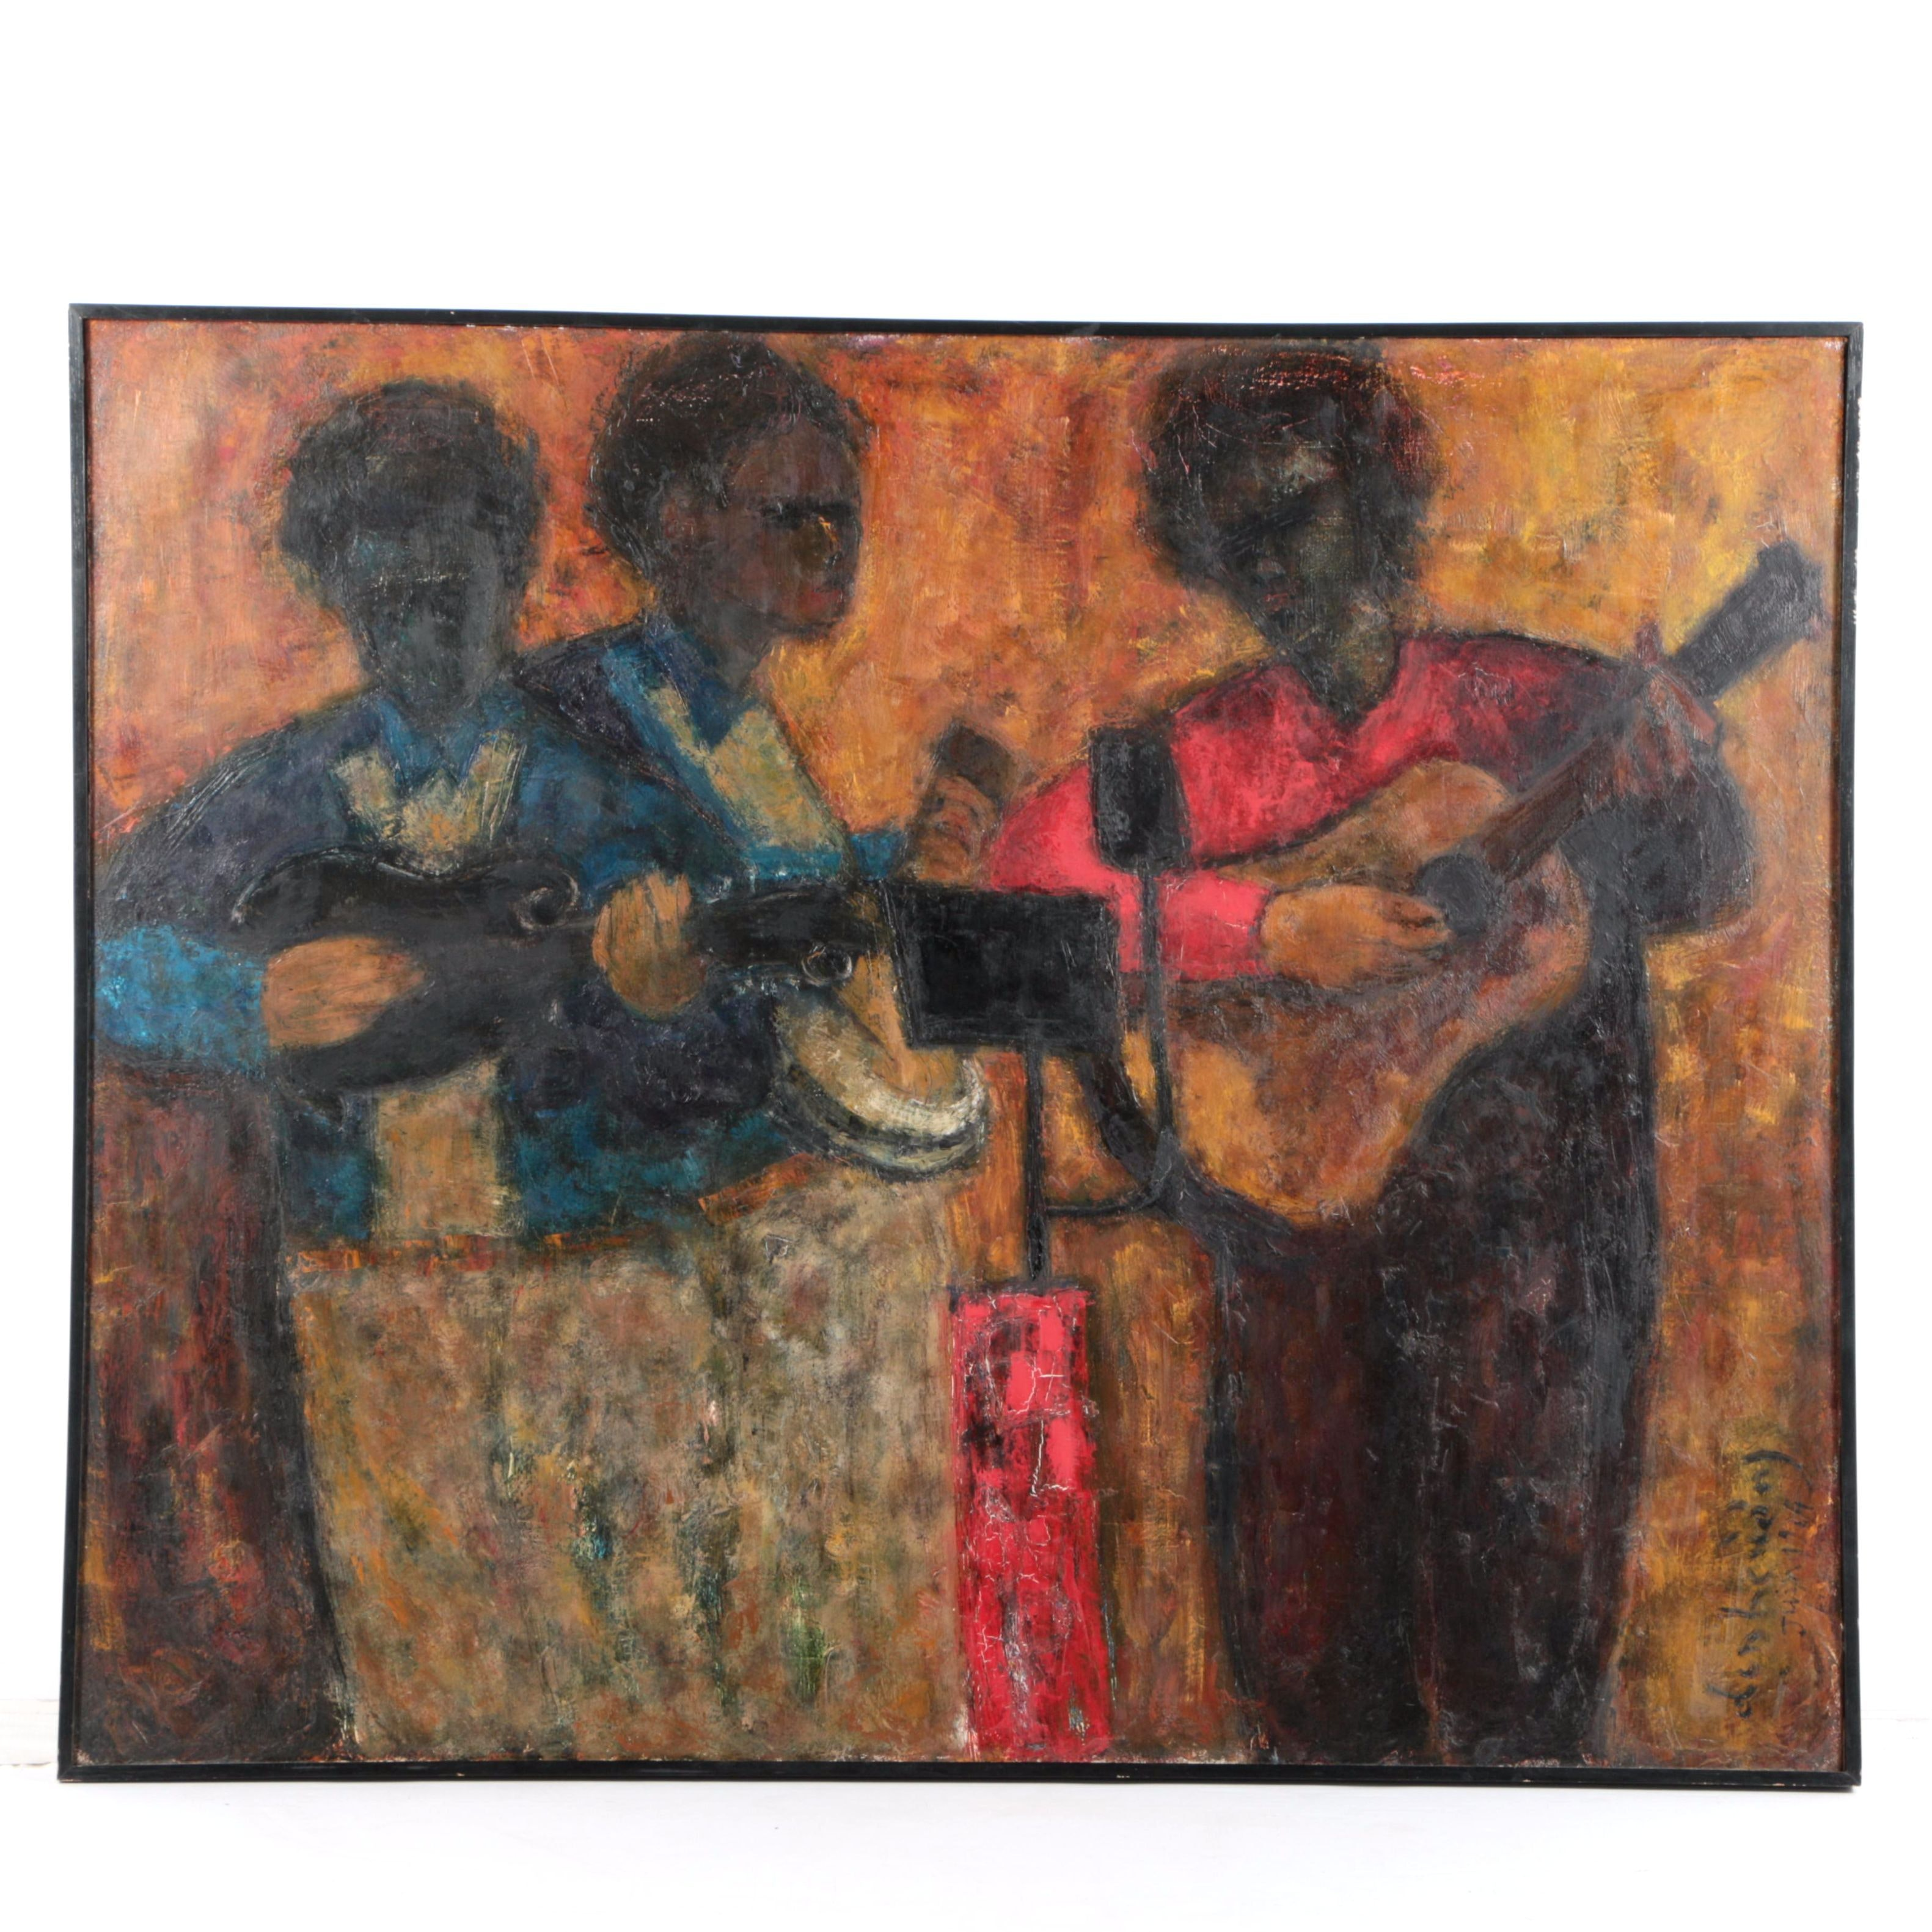 1964 French Acrylic Painting on Canvas of Musicians Performing